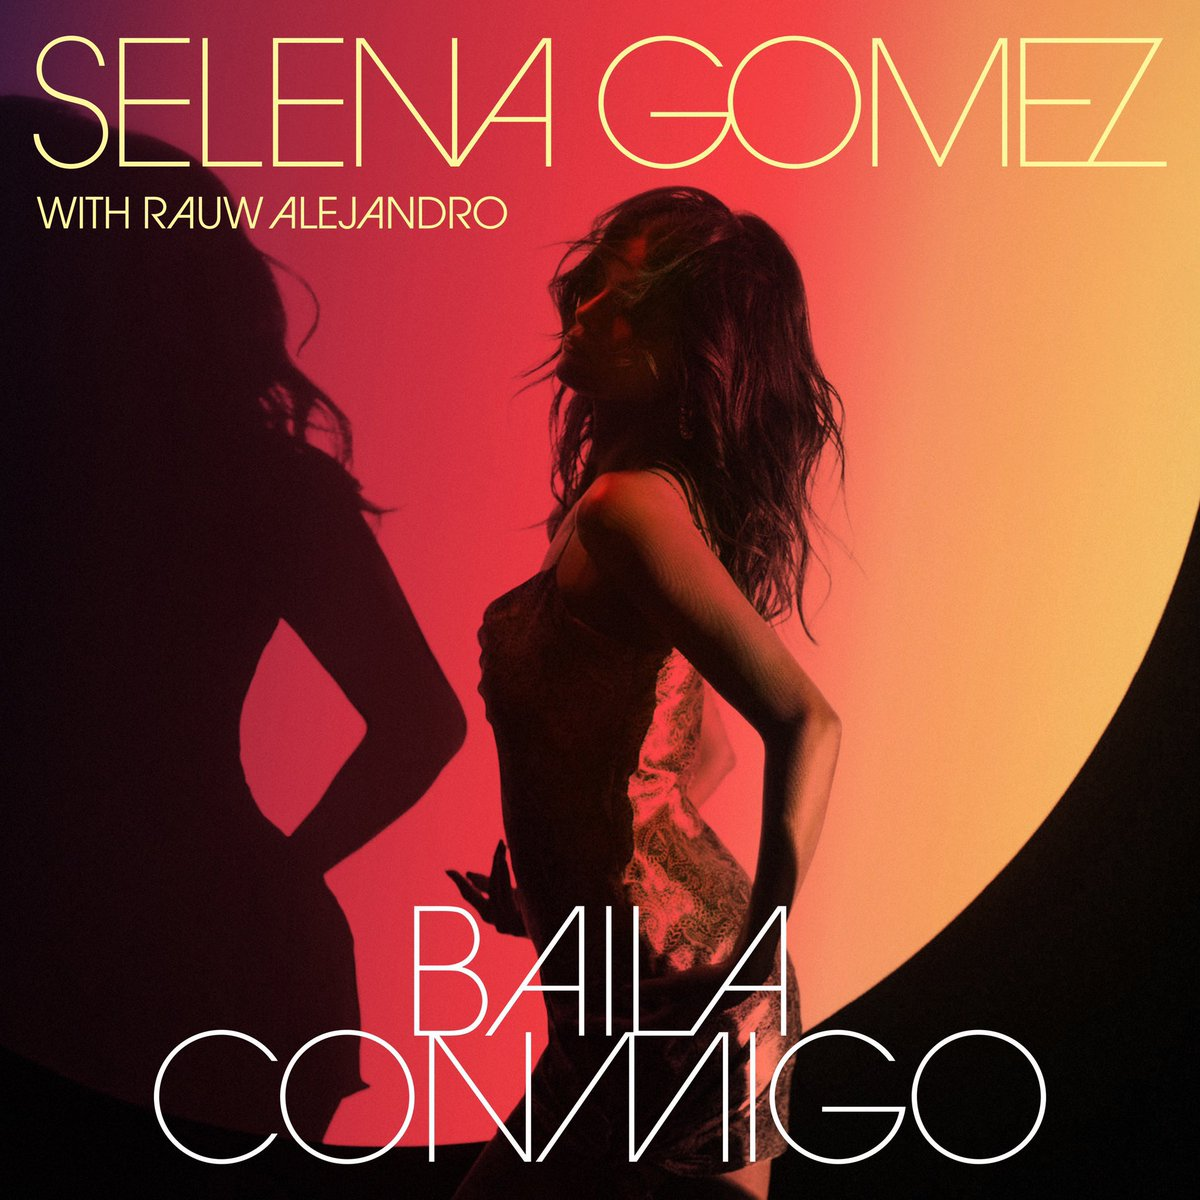 """Her Spanish-language era continues! @selenagomez is teaming up with @rauwalejandro for a new single called """"Baila Conmigo"""":  🔥"""